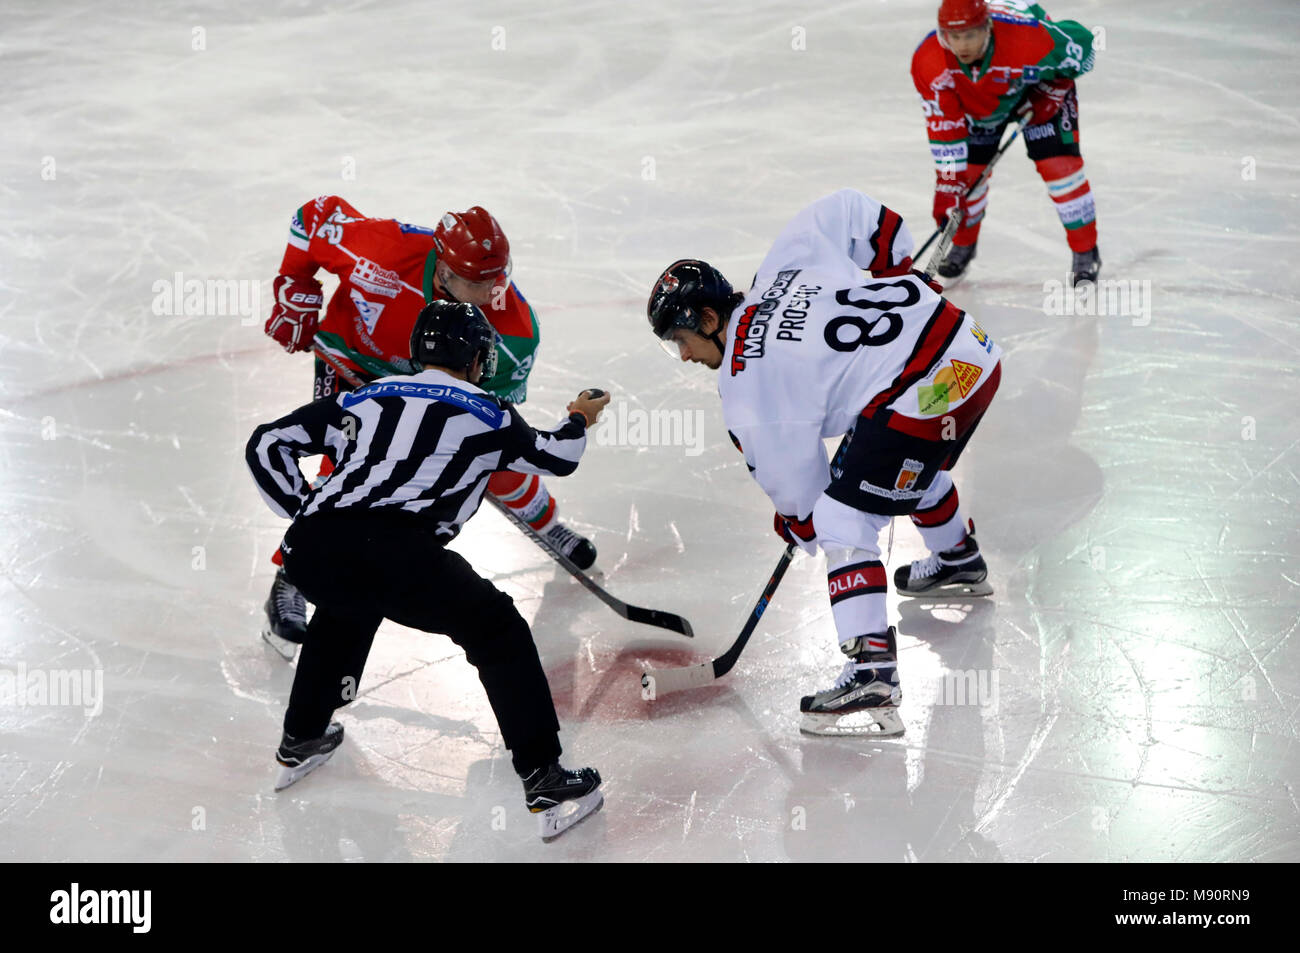 Ice Hockey match. Face off.  Players in action. - Stock Image